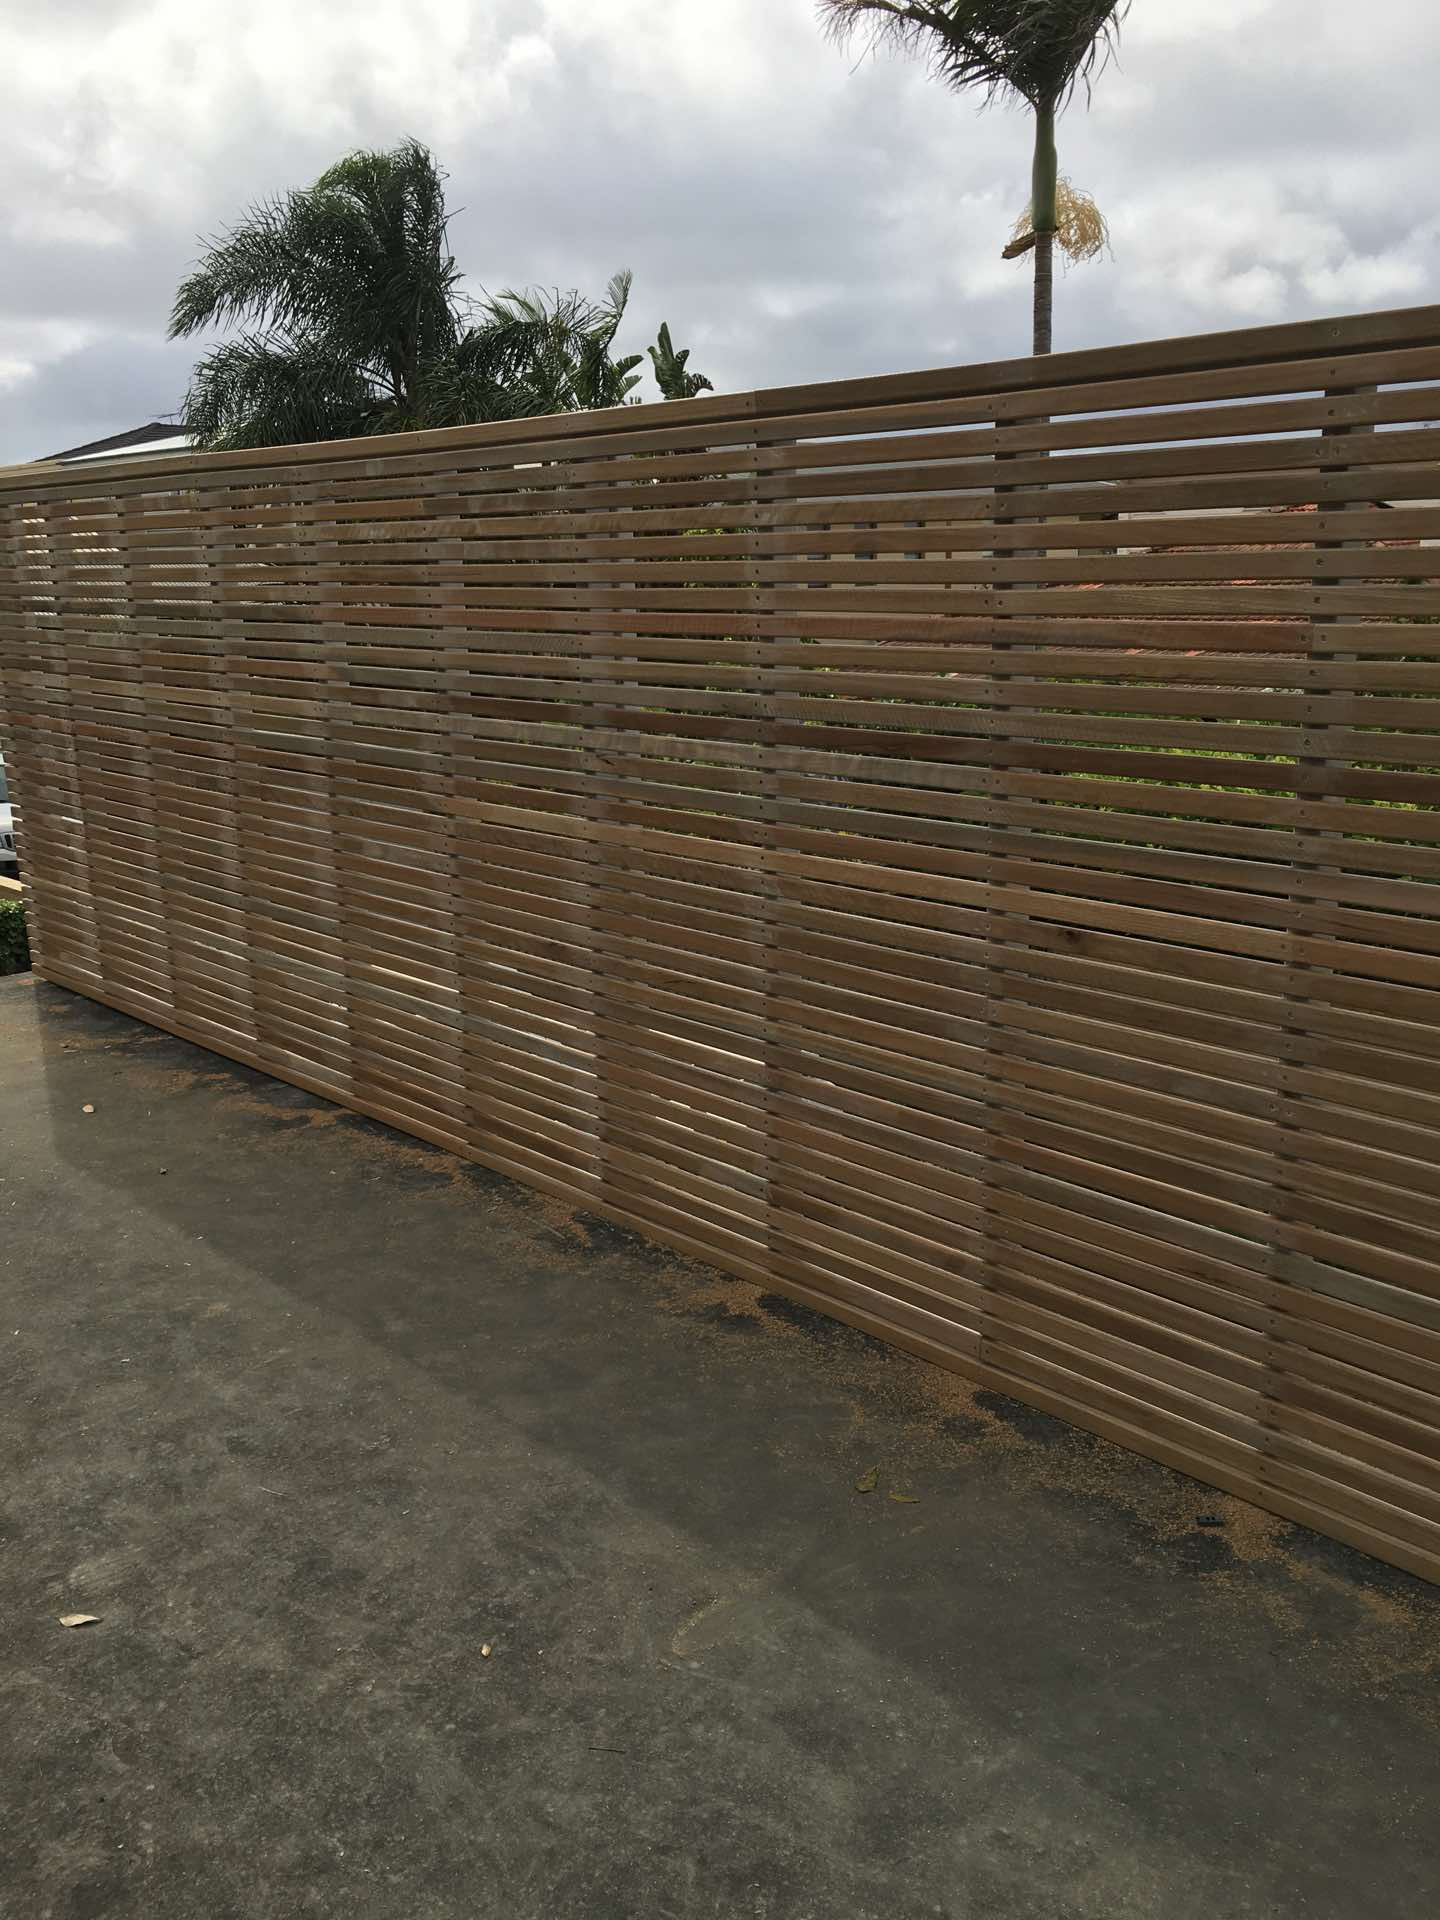 42 x 18 Spotted Gum privacy screen on top of garage roof. Mosman, NSW